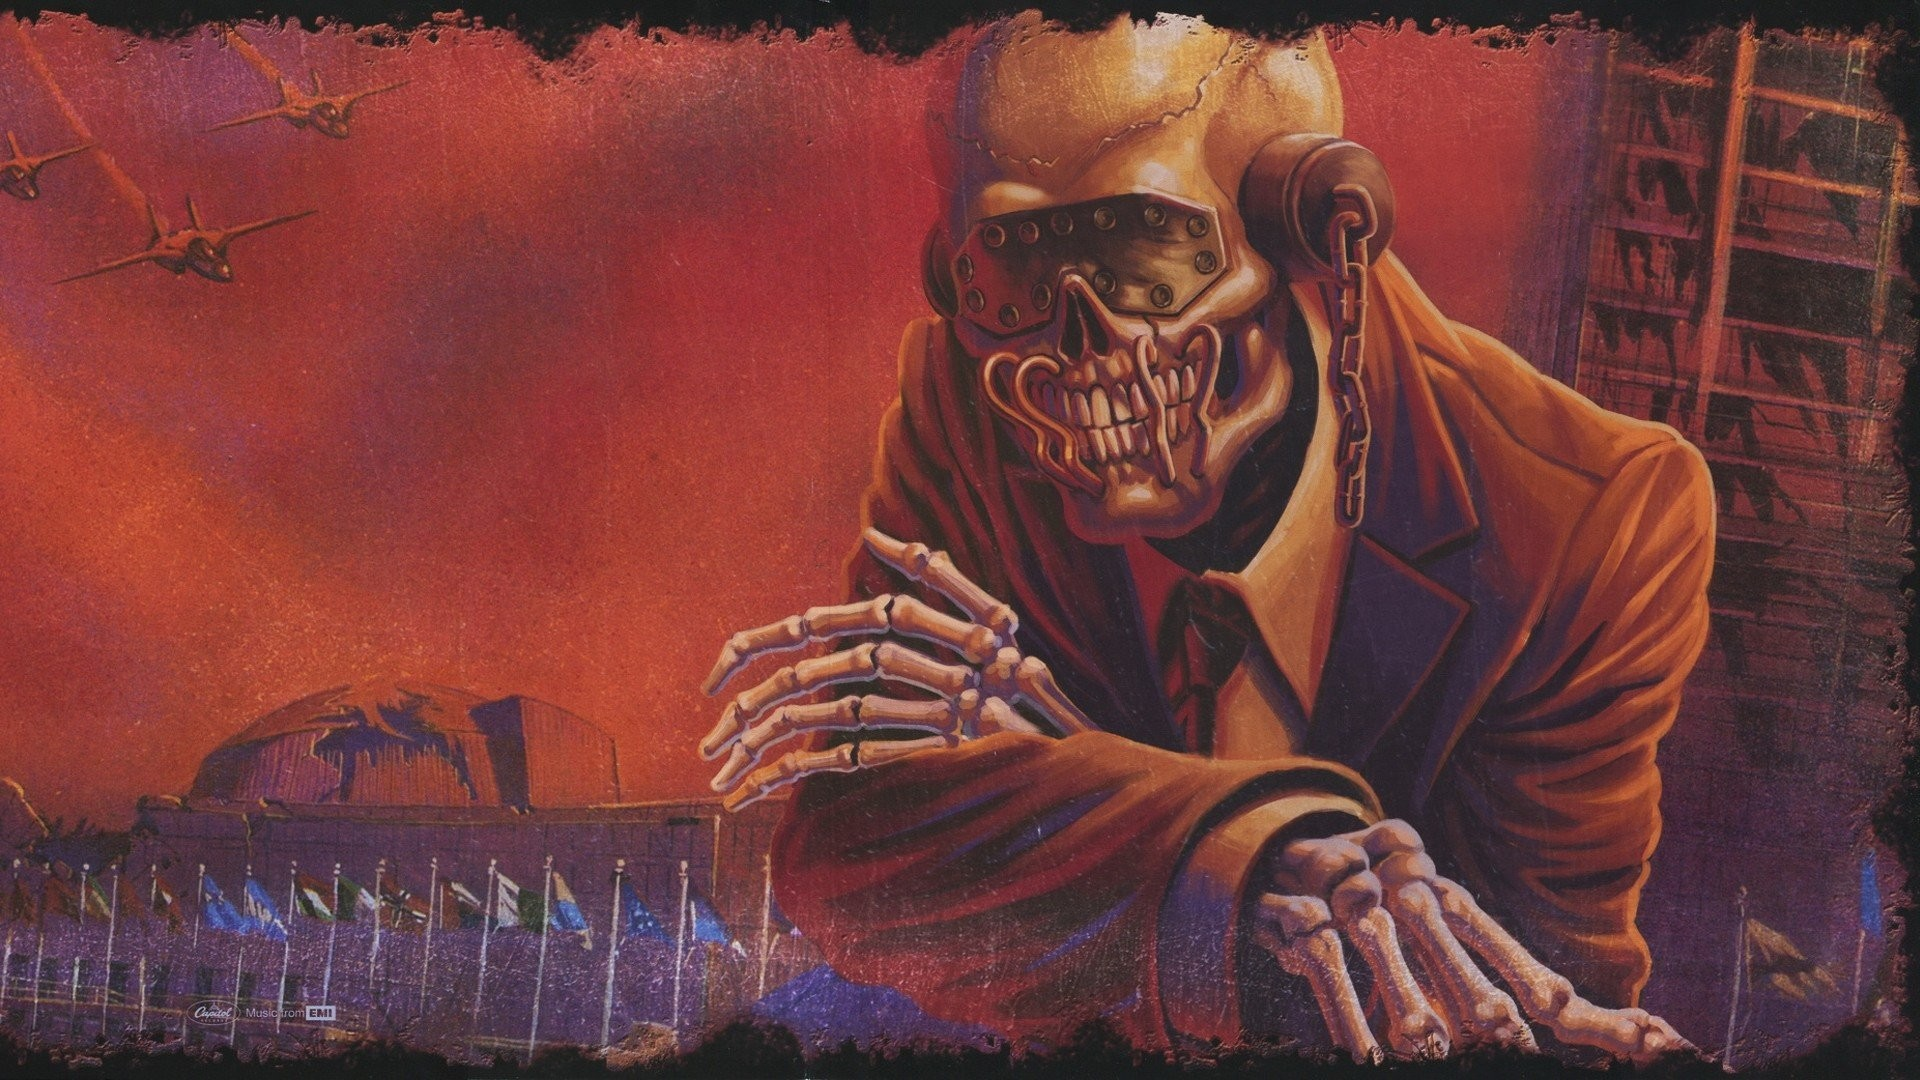 Res: 1920x1080, Megadeth, Band, Vic Rattlehead, Thrash metal, Big 4, Heavy metal, Dave  Mustaine HD Wallpapers / Desktop and Mobile Images & Photos